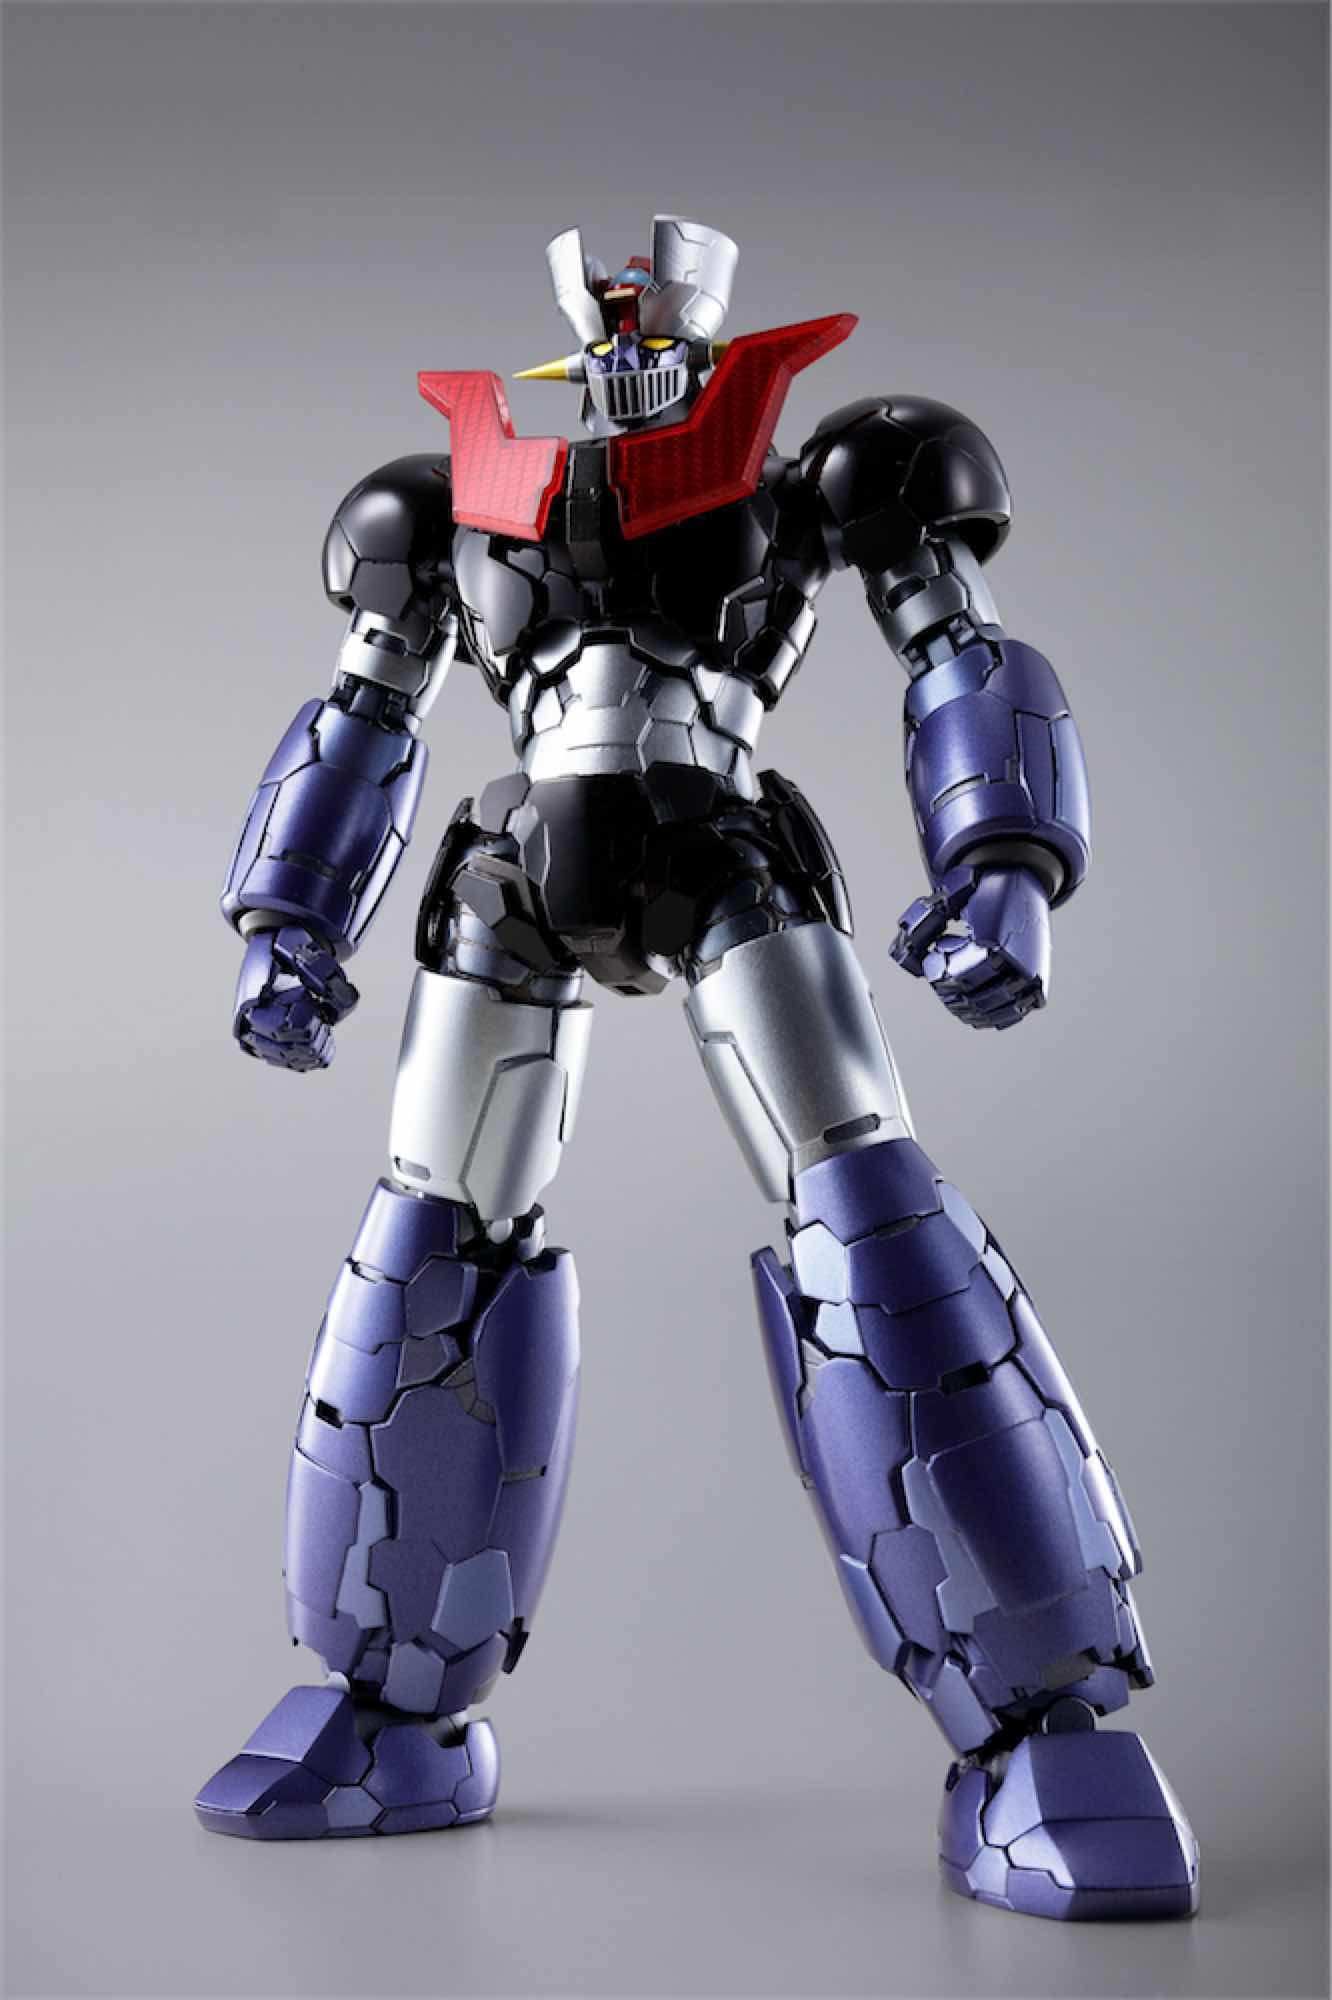 MAZINGER Z FIGURA 18 CM MAZINGER Z INFINITY MOVIE METAL BUILD